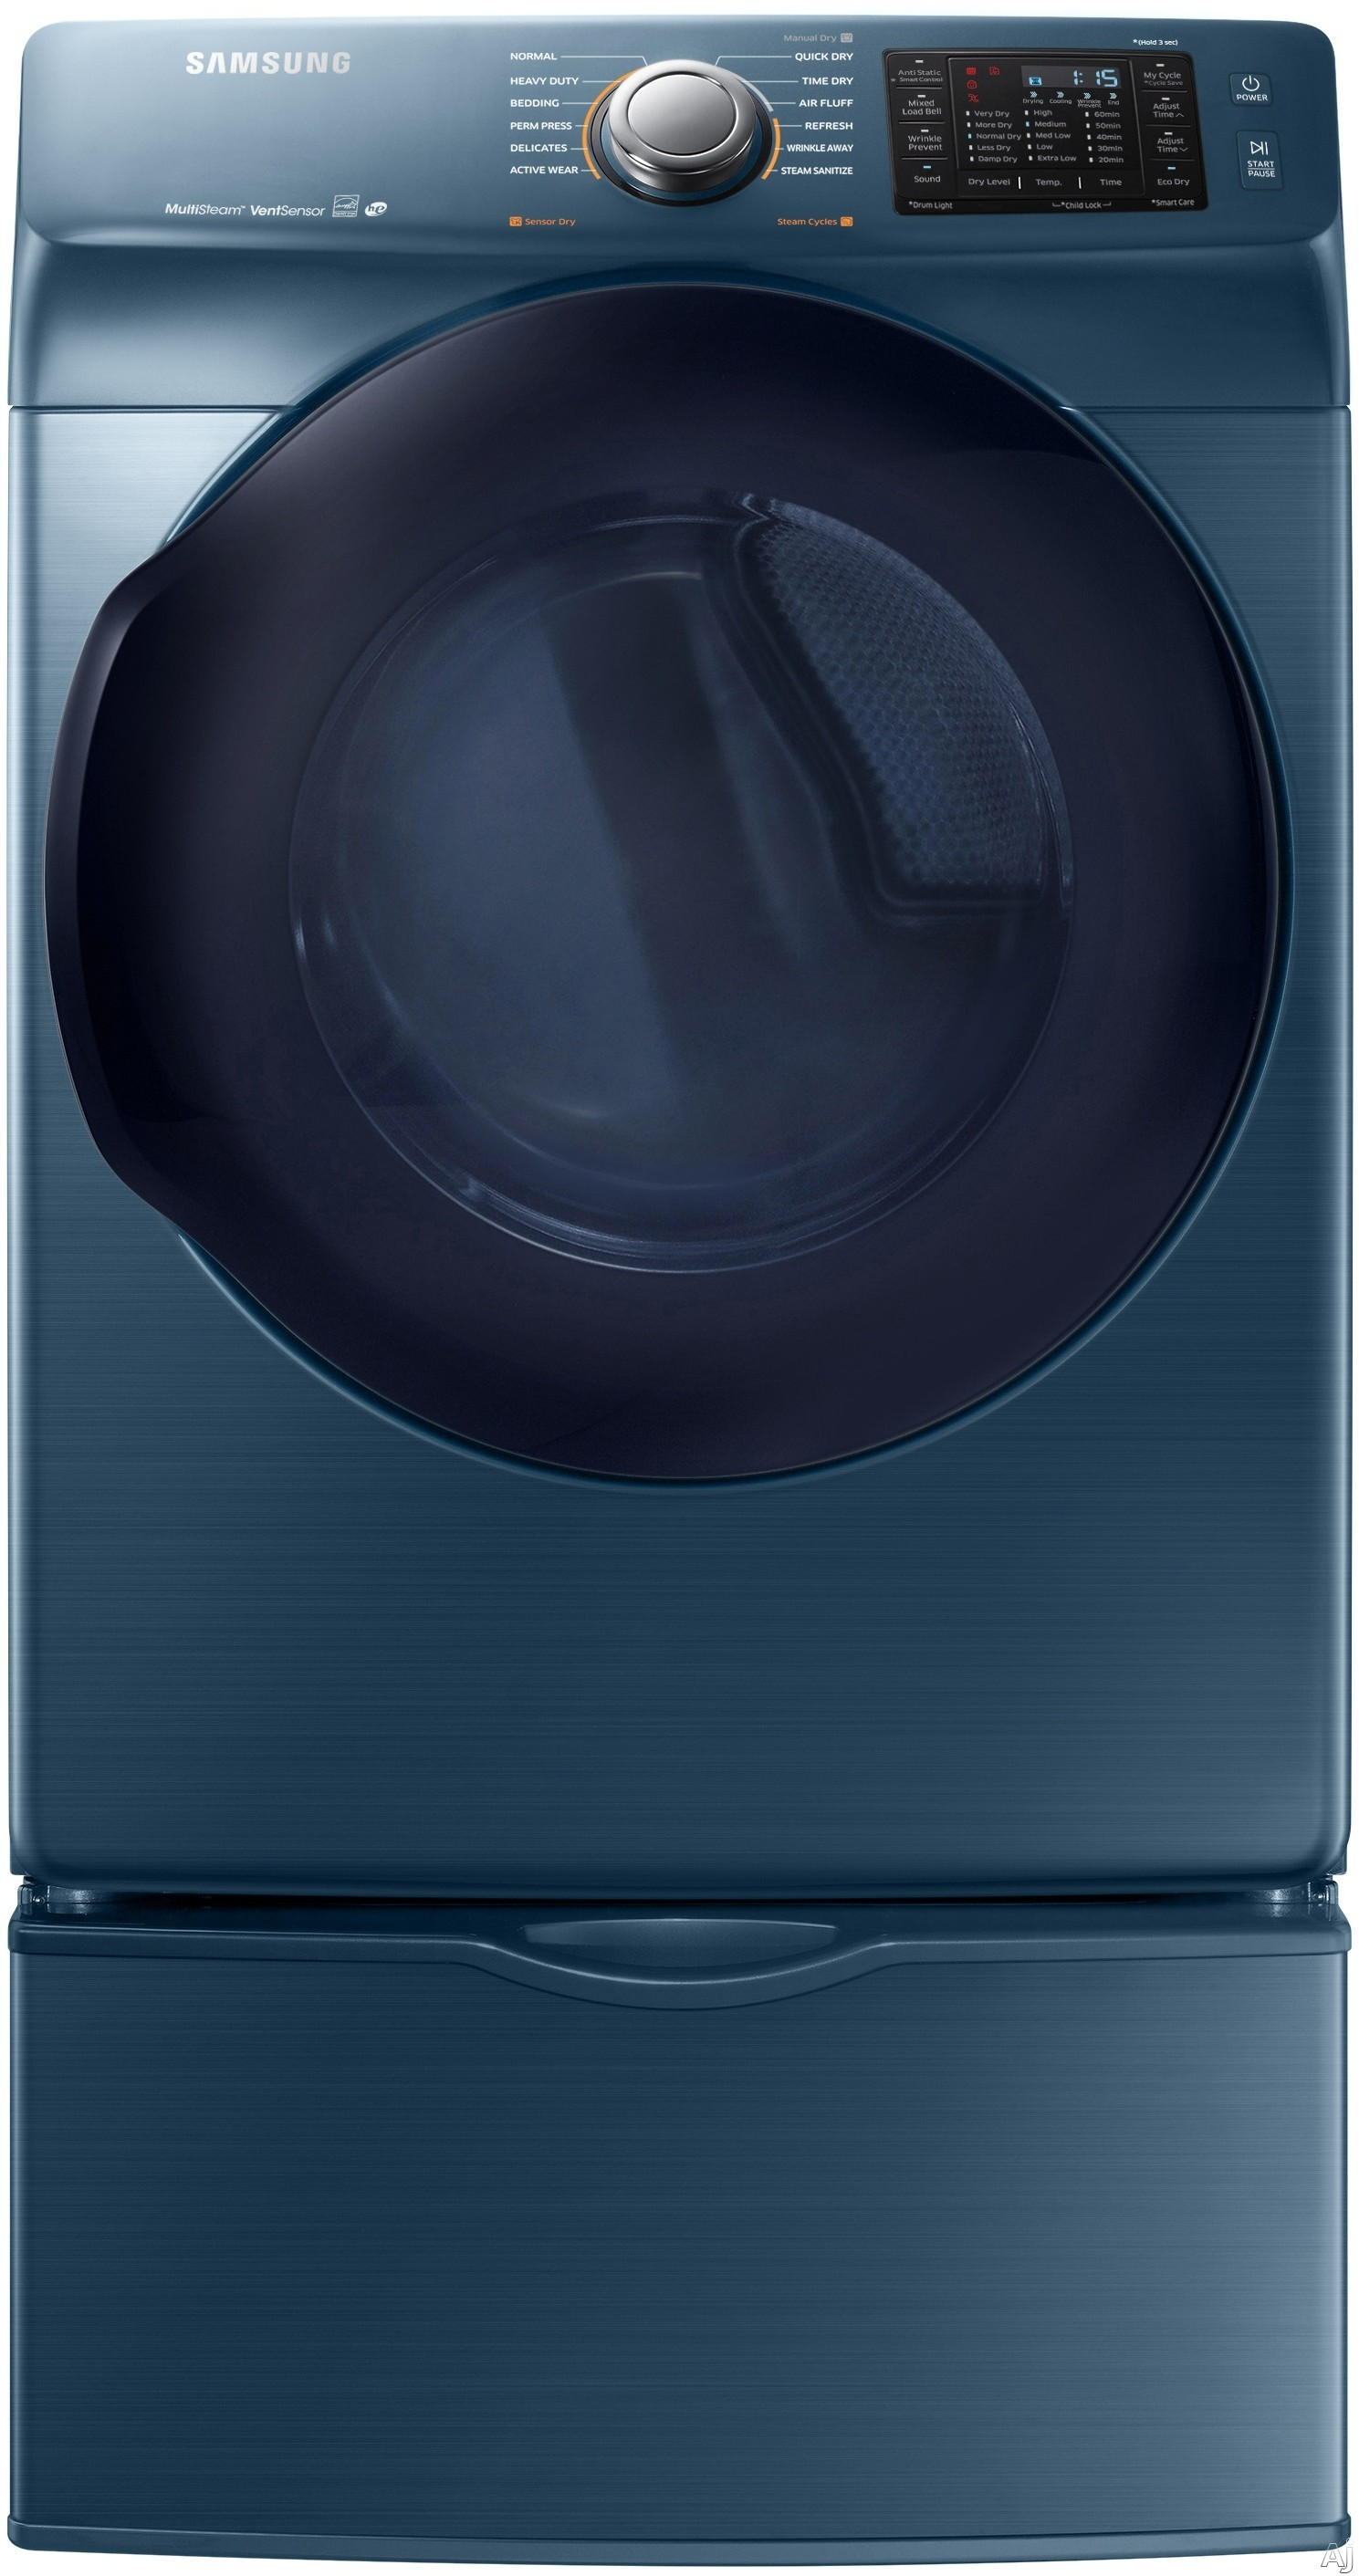 Samsung - 7.5 Cu. Ft. 12-Cycle High-Efficiency Electric Dryer with Steam - Azure DV45K6200EZ